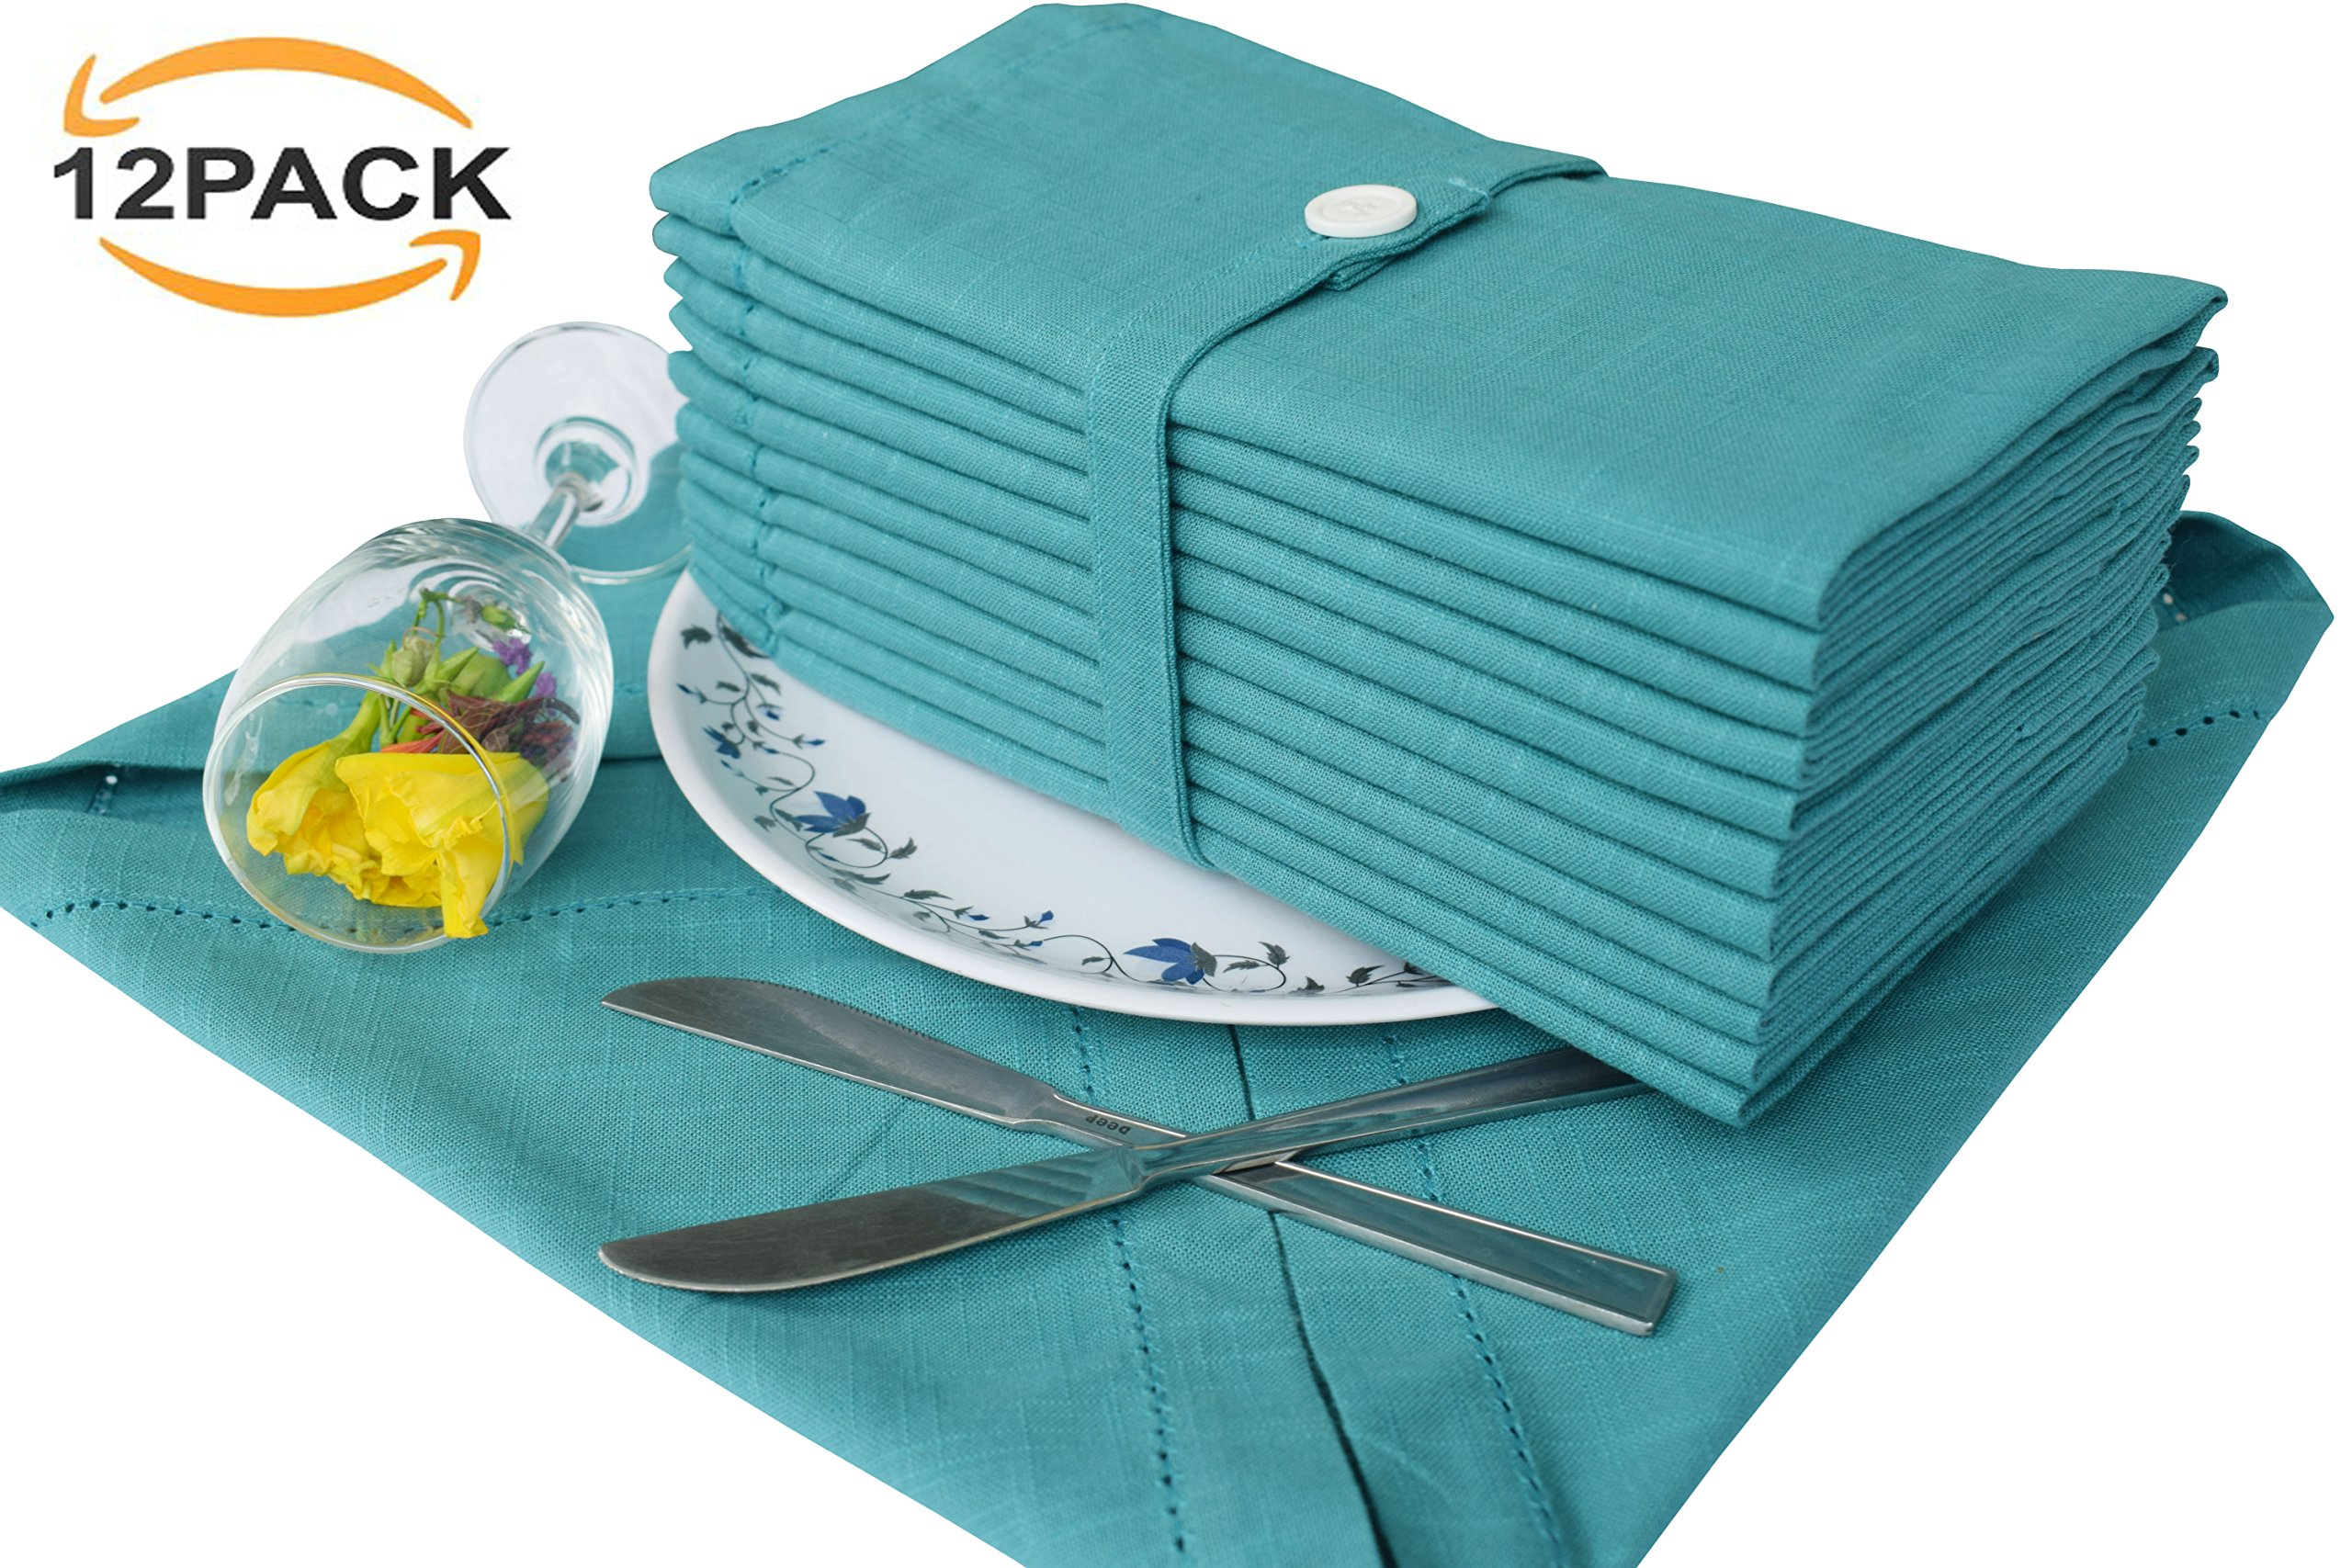 Set of 12 Textured 100% Premium Cotton Cloth Dinner Napkins 20x20 Hemstitched in Teal Color with Designer Linen Looks,Tailored with Hemstitched Mitered Corners and a Generous Hem